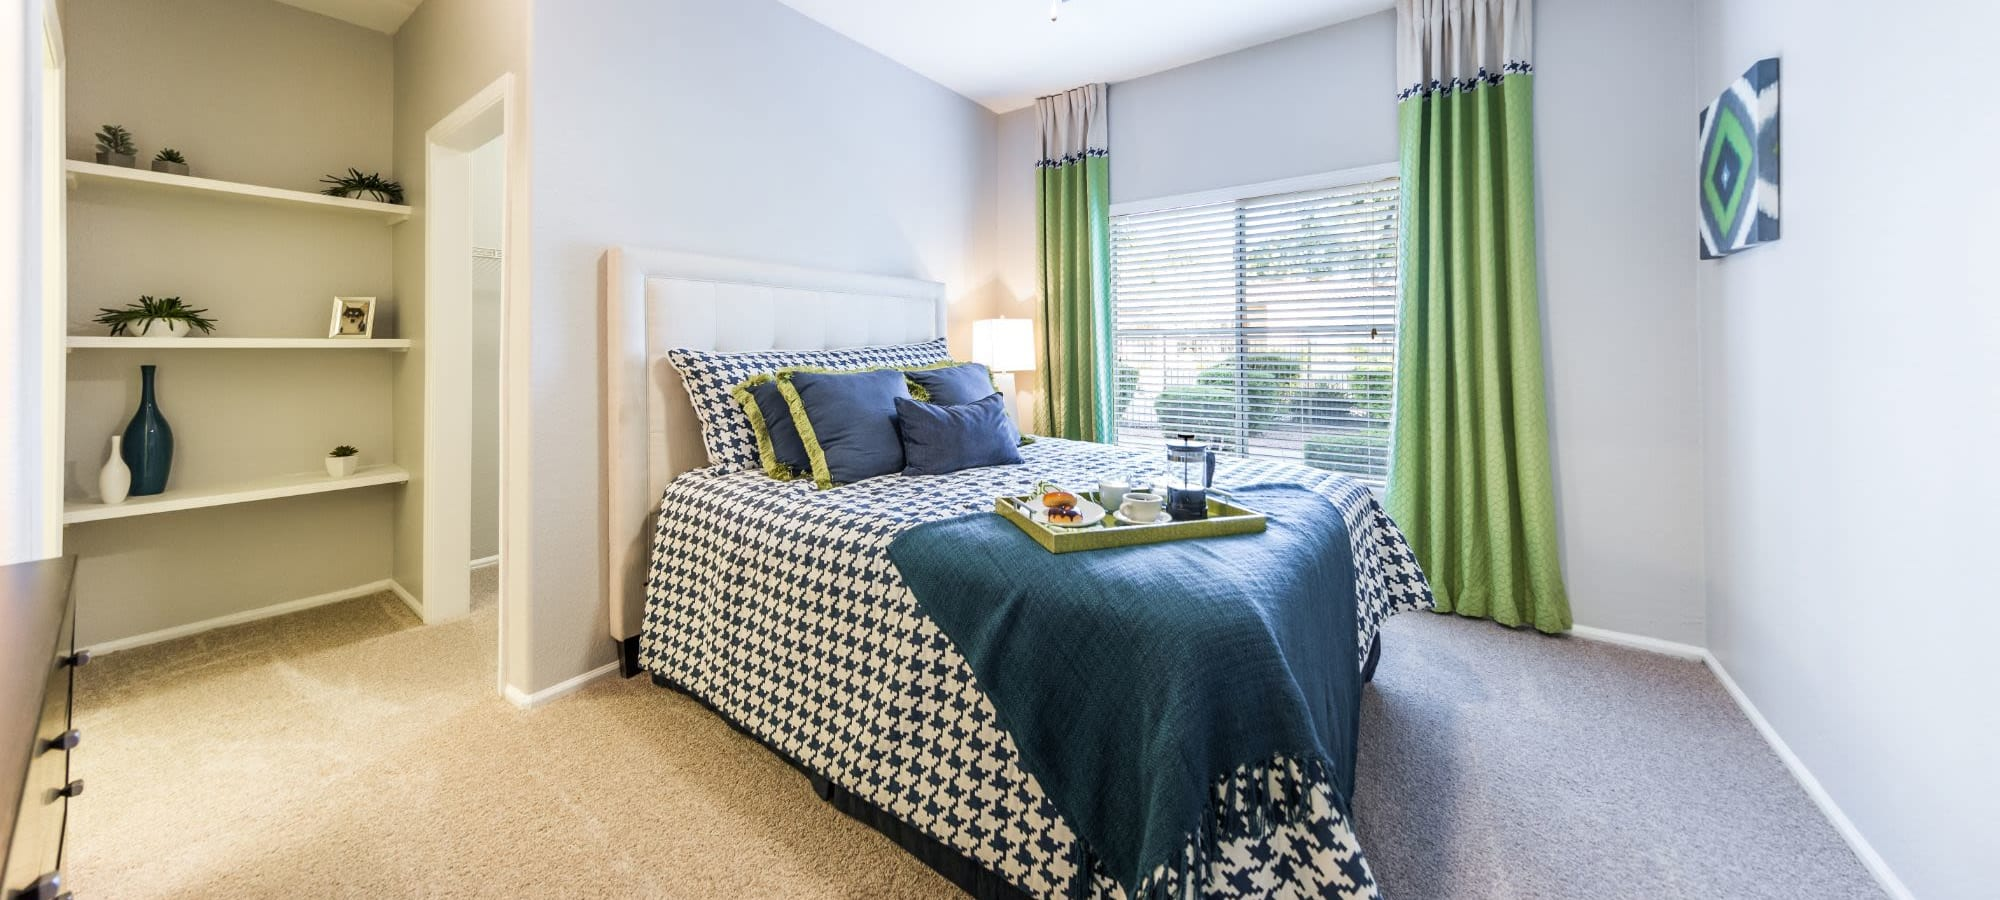 Schedule a tour of Marquis at Arrowhead in Peoria, Arizona